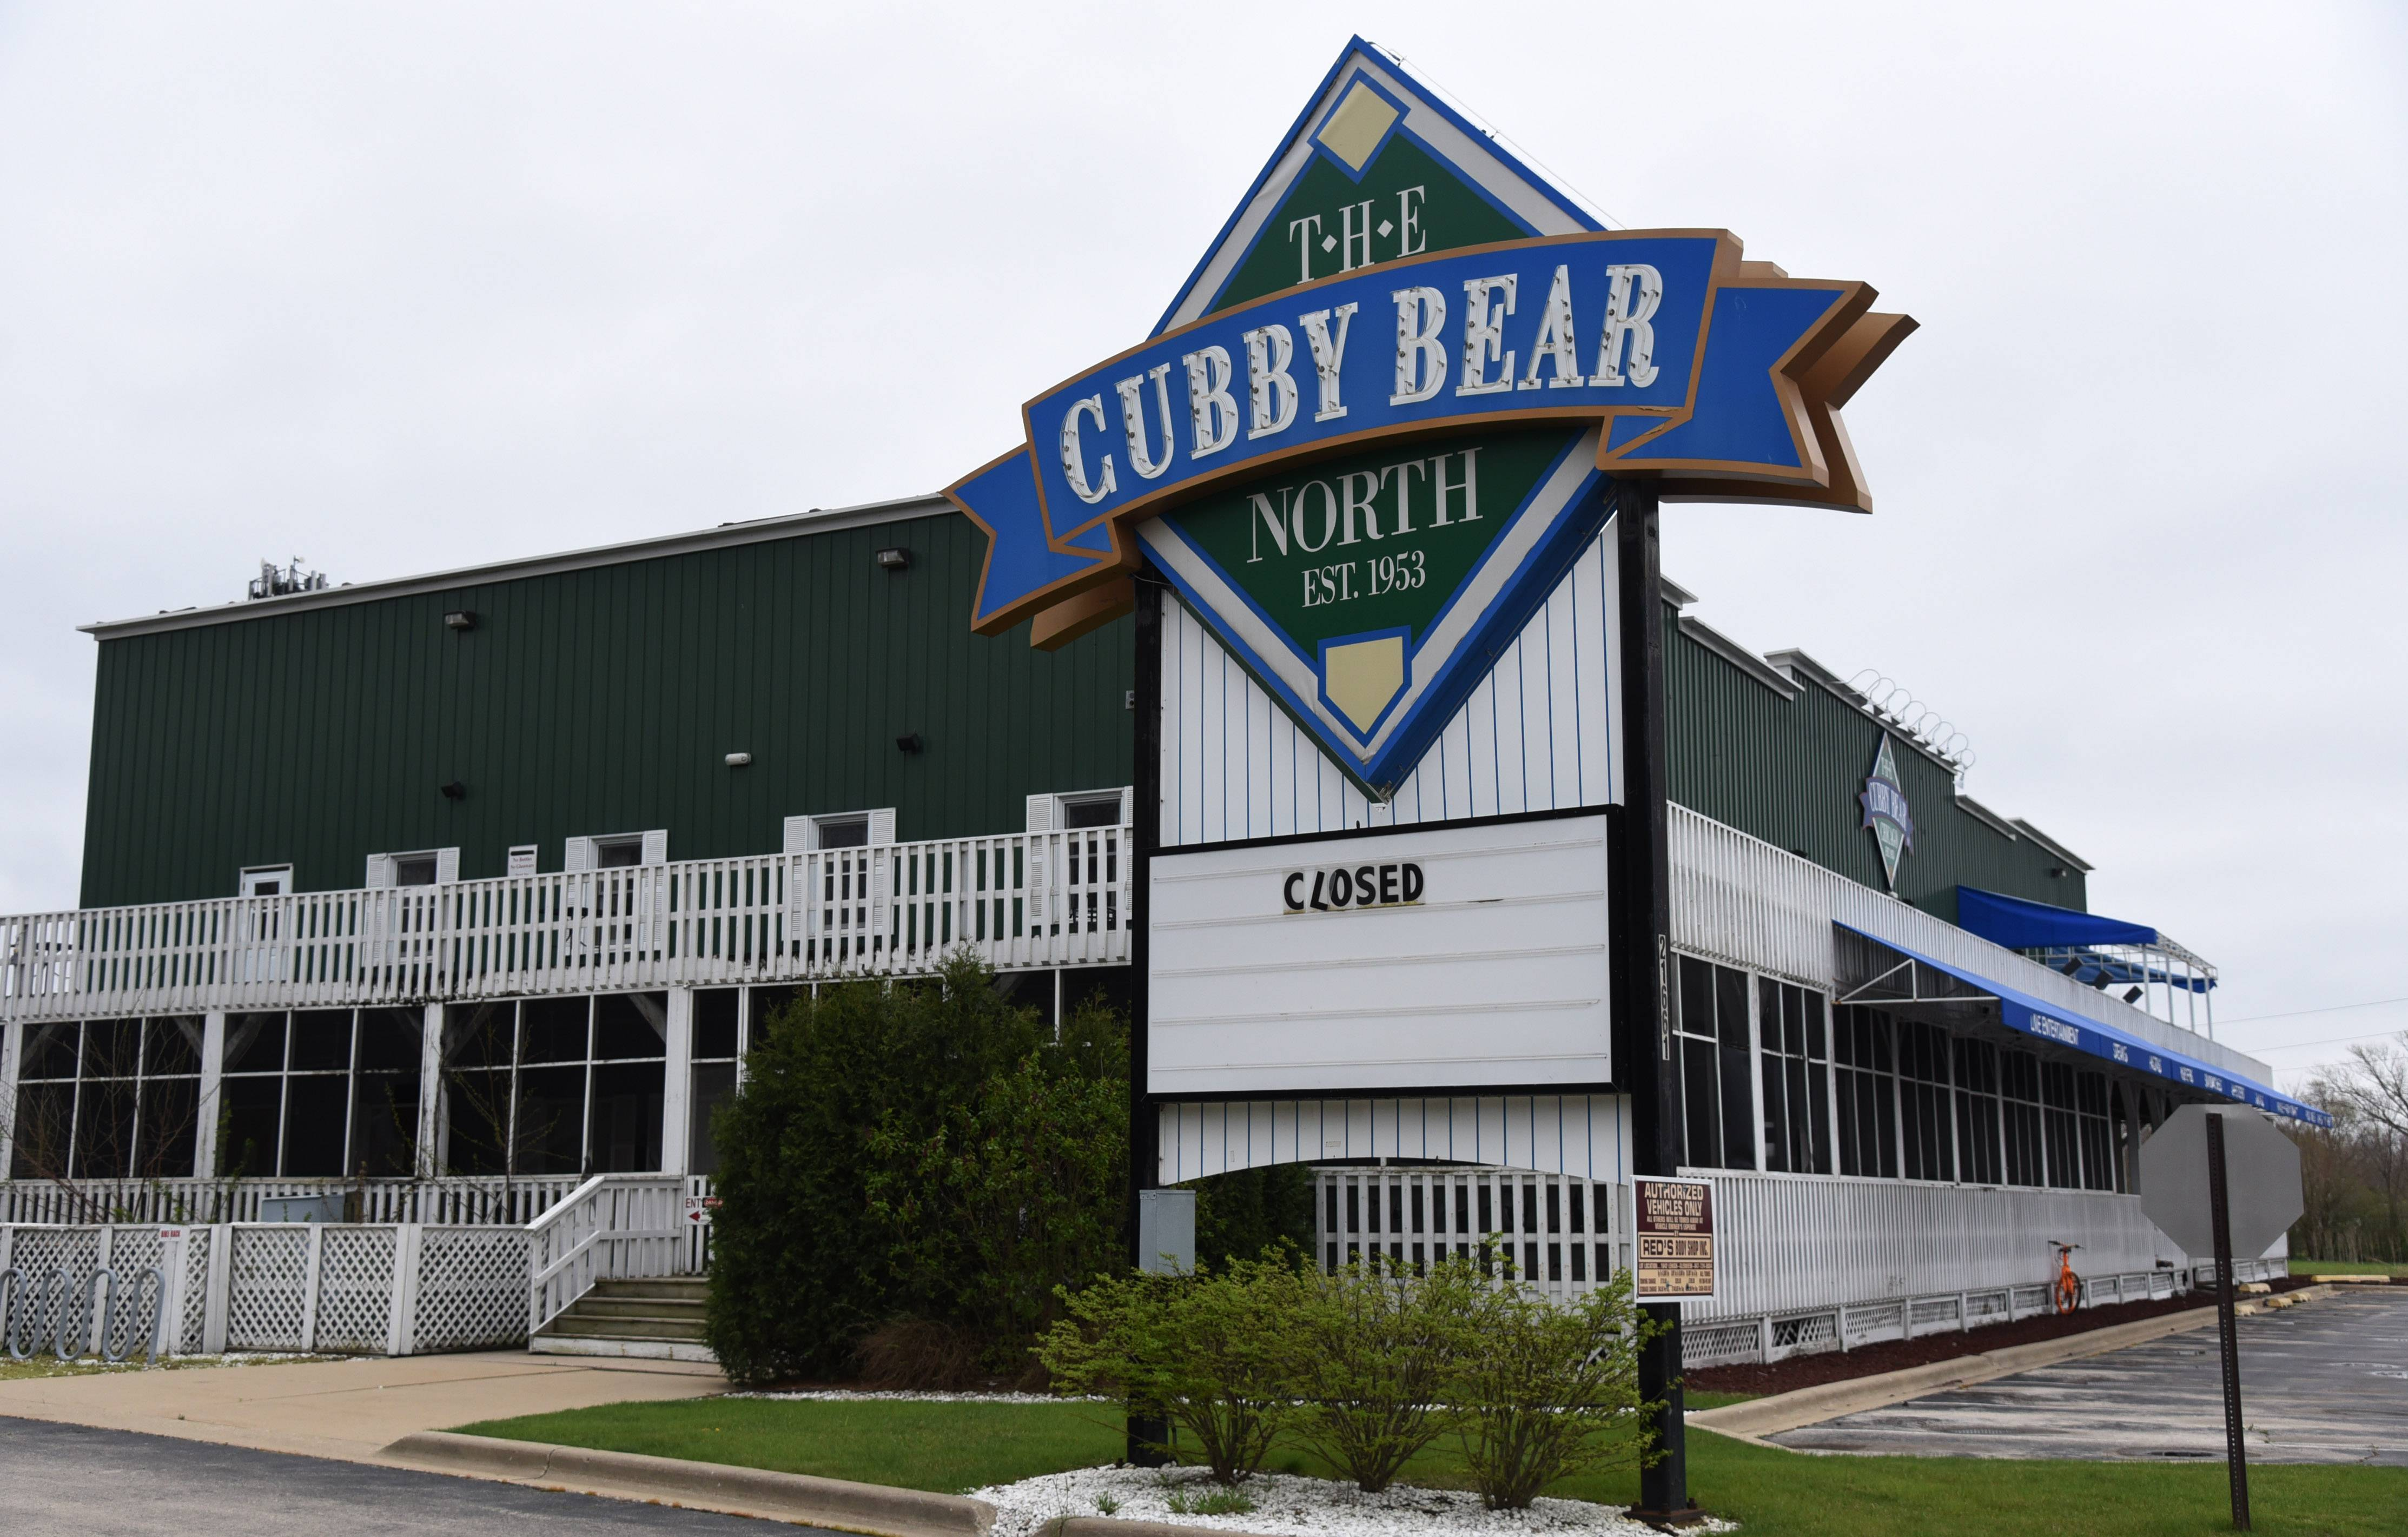 New owner takes over Cubby Bear North in Lincolnshire